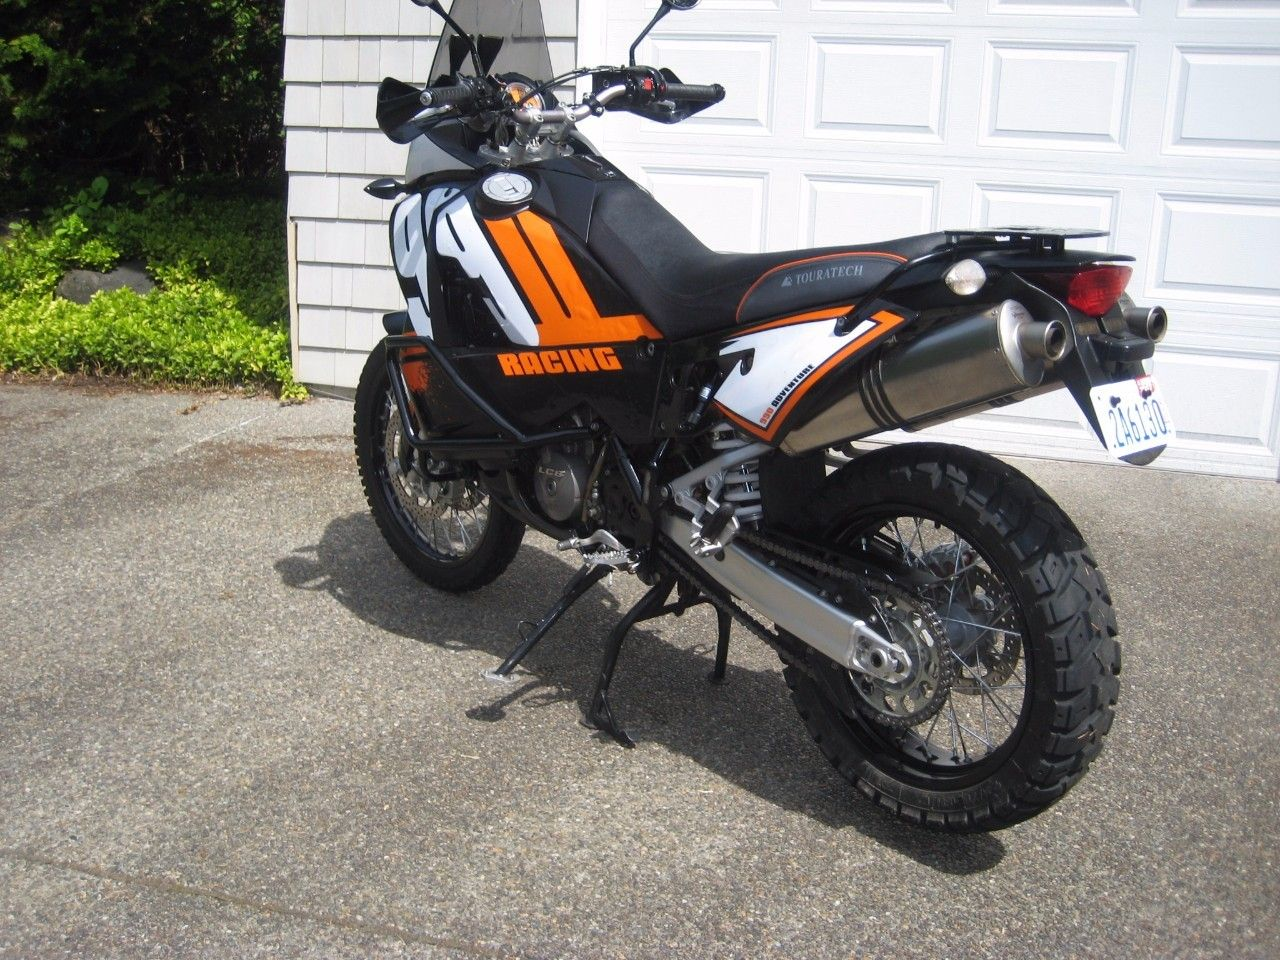 2008 Ktm Adventure 990 Price And Modification Picture Ktm Adventure Ktm Adventure